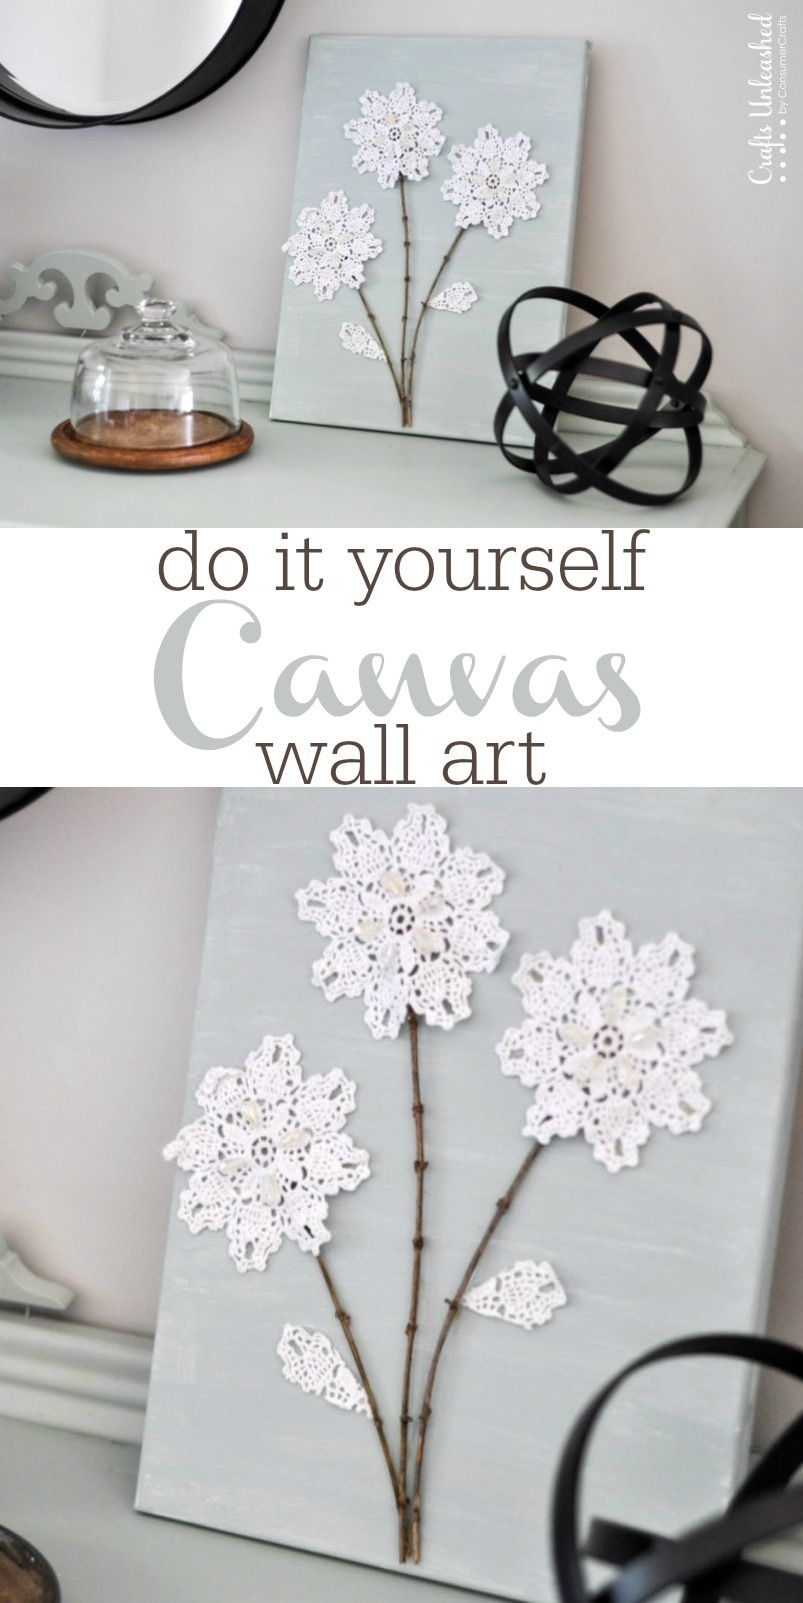 Diy Canvas Wall Art: Shabby Chic Flowers – Crafts Unleashed For Best And Newest Fabric Dress Wall Art (View 6 of 15)